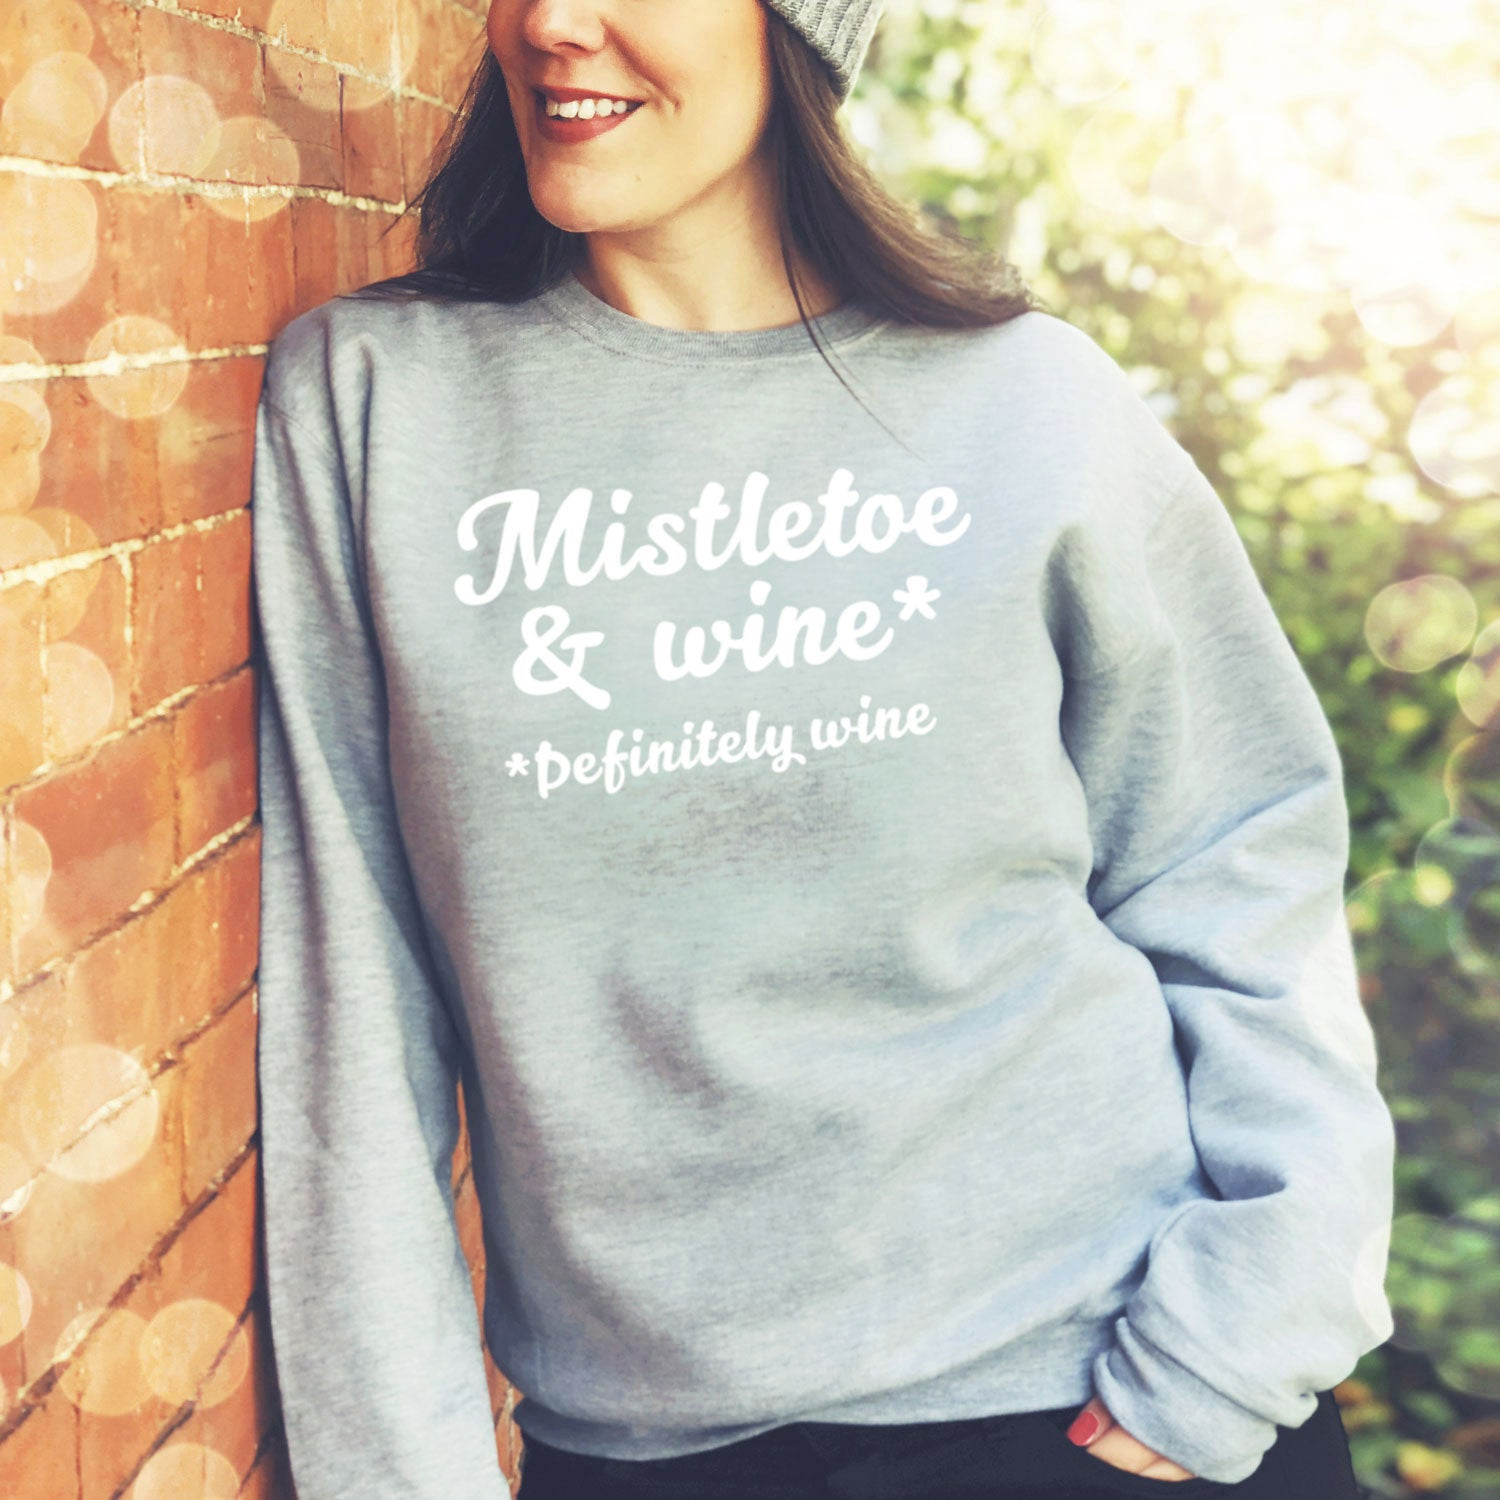 Mistletoe & wine sweatshirt